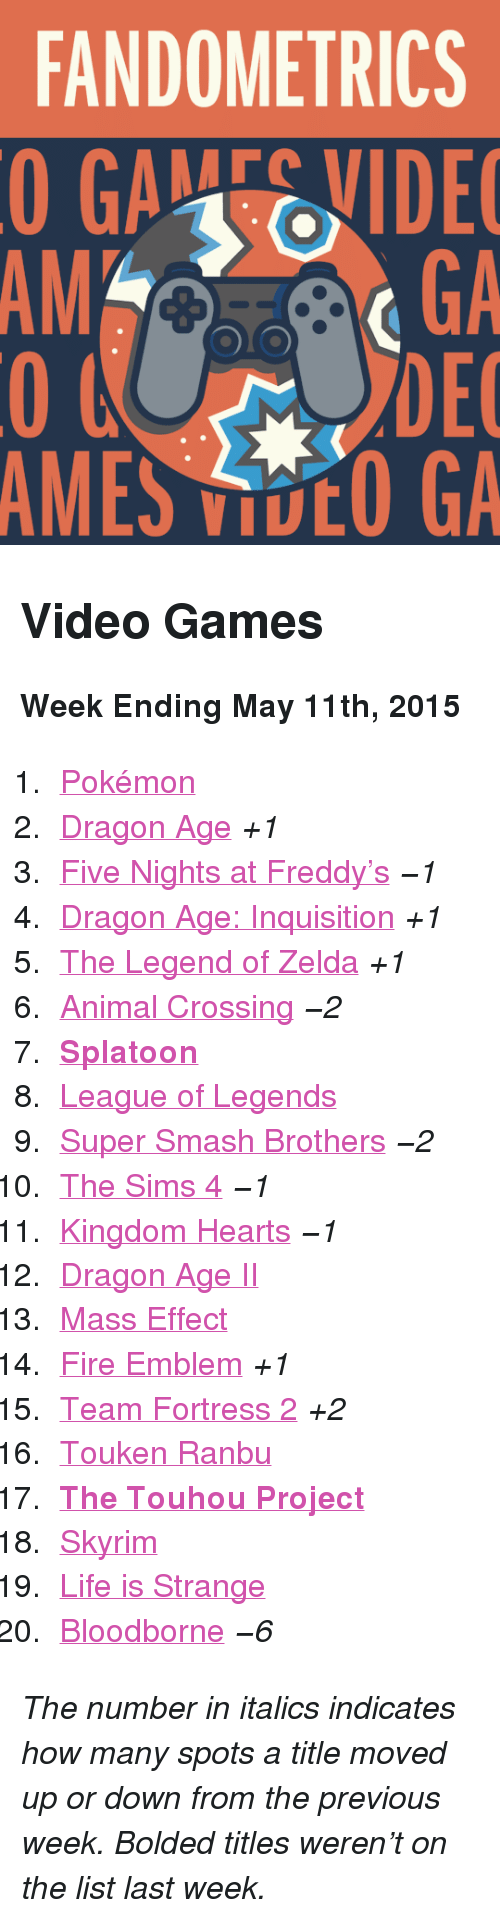 """Fire, League of Legends, and Life: FANDOMETRICS  GAEVIDE  GA  DEC  AMES VOO GA  AM <h2>Video Games</h2><p><b>Week Ending May 11th, 2015</b></p><ol><li><a href=""""http://www.tumblr.com/search/pokemon"""">Pokémon</a></li>  <li><a href=""""http://www.tumblr.com/search/dragon%20age"""">Dragon Age</a><i>+1</i></li>  <li><a href=""""http://www.tumblr.com/search/five%20nights%20at%20freddy's"""">Five Nights at Freddy&rsquo;s</a><i>−1</i></li>  <li><a href=""""http://www.tumblr.com/search/dragon%20age%20inquisition"""">Dragon Age: Inquisition</a><i>+1</i></li>  <li><a href=""""http://www.tumblr.com/search/legend%20of%20zelda"""">The Legend of Zelda</a><i>+1</i></li>  <li><a href=""""http://www.tumblr.com/search/acnl"""">Animal Crossing</a><i>−2</i></li>  <li><a href=""""http://www.tumblr.com/search/splatoon""""><b>Splatoon</b></a></li>  <li><a href=""""http://www.tumblr.com/search/league%20of%20legends"""">League of Legends</a></li>  <li><a href=""""http://www.tumblr.com/search/super%20smash%20bros"""">Super Smash Brothers</a><i>−2</i></li>  <li><a href=""""http://www.tumblr.com/search/sims%204"""">The Sims 4</a><i>−1</i></li>  <li><a href=""""http://www.tumblr.com/search/kingdom%20hearts"""">Kingdom Hearts</a><i>−1</i></li>  <li><a href=""""http://www.tumblr.com/search/dragon%20age%202"""">Dragon Age II</a></li>  <li><a href=""""http://www.tumblr.com/search/mass%20effect"""">Mass Effect</a></li>  <li><a href=""""http://www.tumblr.com/search/fire%20emblem"""">Fire Emblem</a><i>+1</i></li>  <li><a href=""""http://www.tumblr.com/search/tf2"""">Team Fortress 2</a><i>+2</i></li>  <li><a href=""""http://www.tumblr.com/search/touken%20ranbu"""">Touken Ranbu</a></li>  <li><a href=""""http://www.tumblr.com/search/touhou""""><b>The Touhou Project</b></a></li>  <li><a href=""""http://www.tumblr.com/search/skyrim"""">Skyrim</a></li>  <li><a href=""""http://www.tumblr.com/search/life%20is%20strange"""">Life is Strange</a></li>  <li><a href=""""http://www.tumblr.com/search/bloodborne"""">Bloodborne</a><i>−6</i></li></ol><p><i>The number in italics indicates how many spots a title moved up or down from t"""